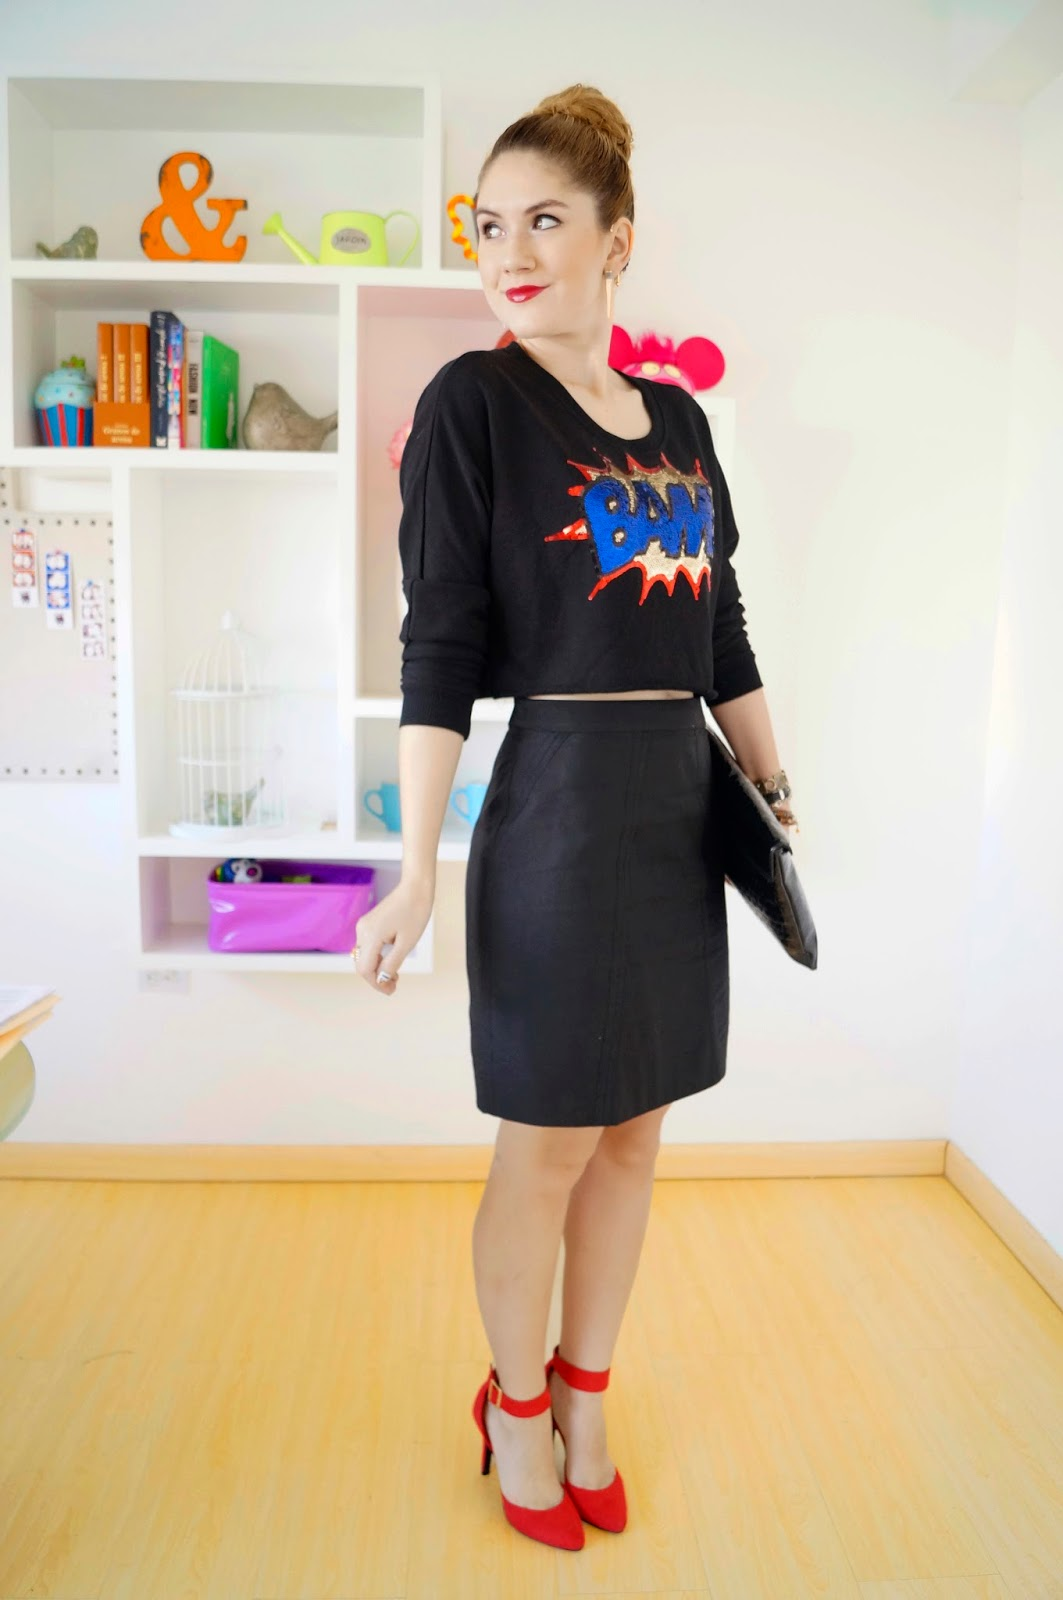 Pop Art Outfit, Pop Art Trend, Summer 2014 Trend, Fashion Blog, Trendy Outfit 2014, Pencil Skirt Outfit, Forever 21 Sweater, Asos Shoes